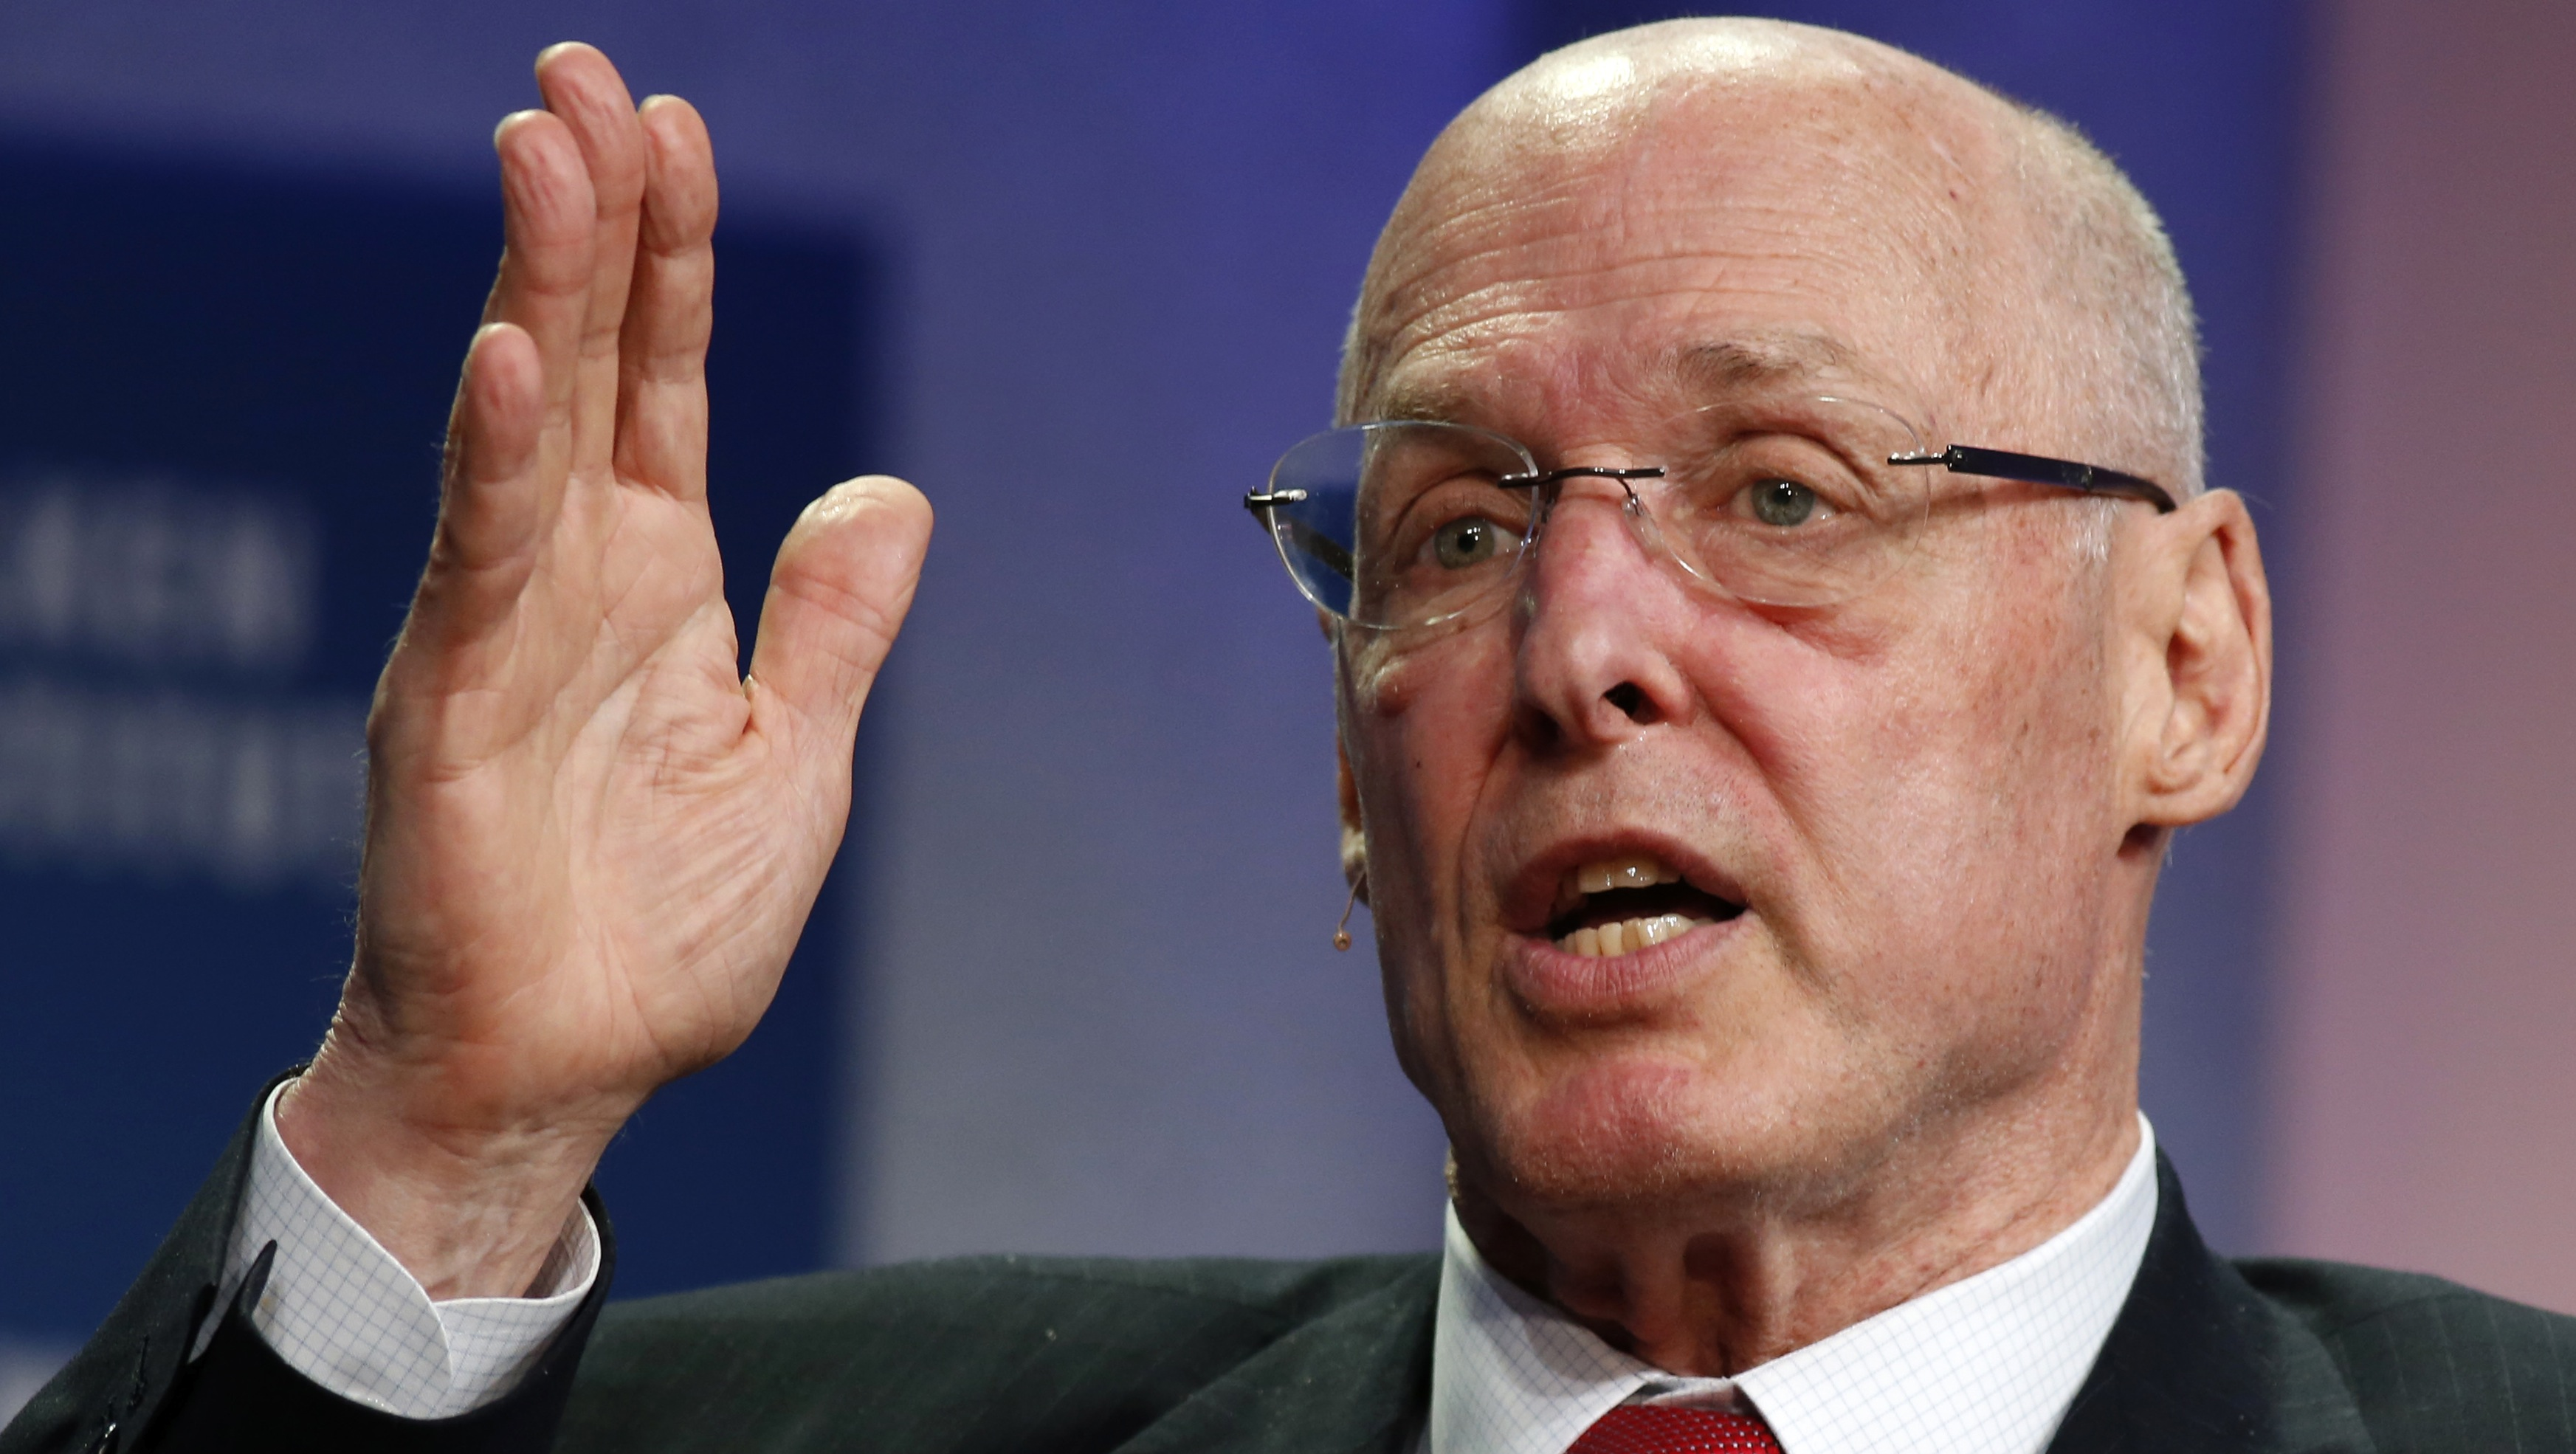 Hank Paulson, Chairman of The Paulson Institute and former U.S. Treasury Secretary, speaks at the 2014 Milken Institute Global Conference in Beverly Hills, California April 28, 2014. REUTERS/Lucy Nicholson